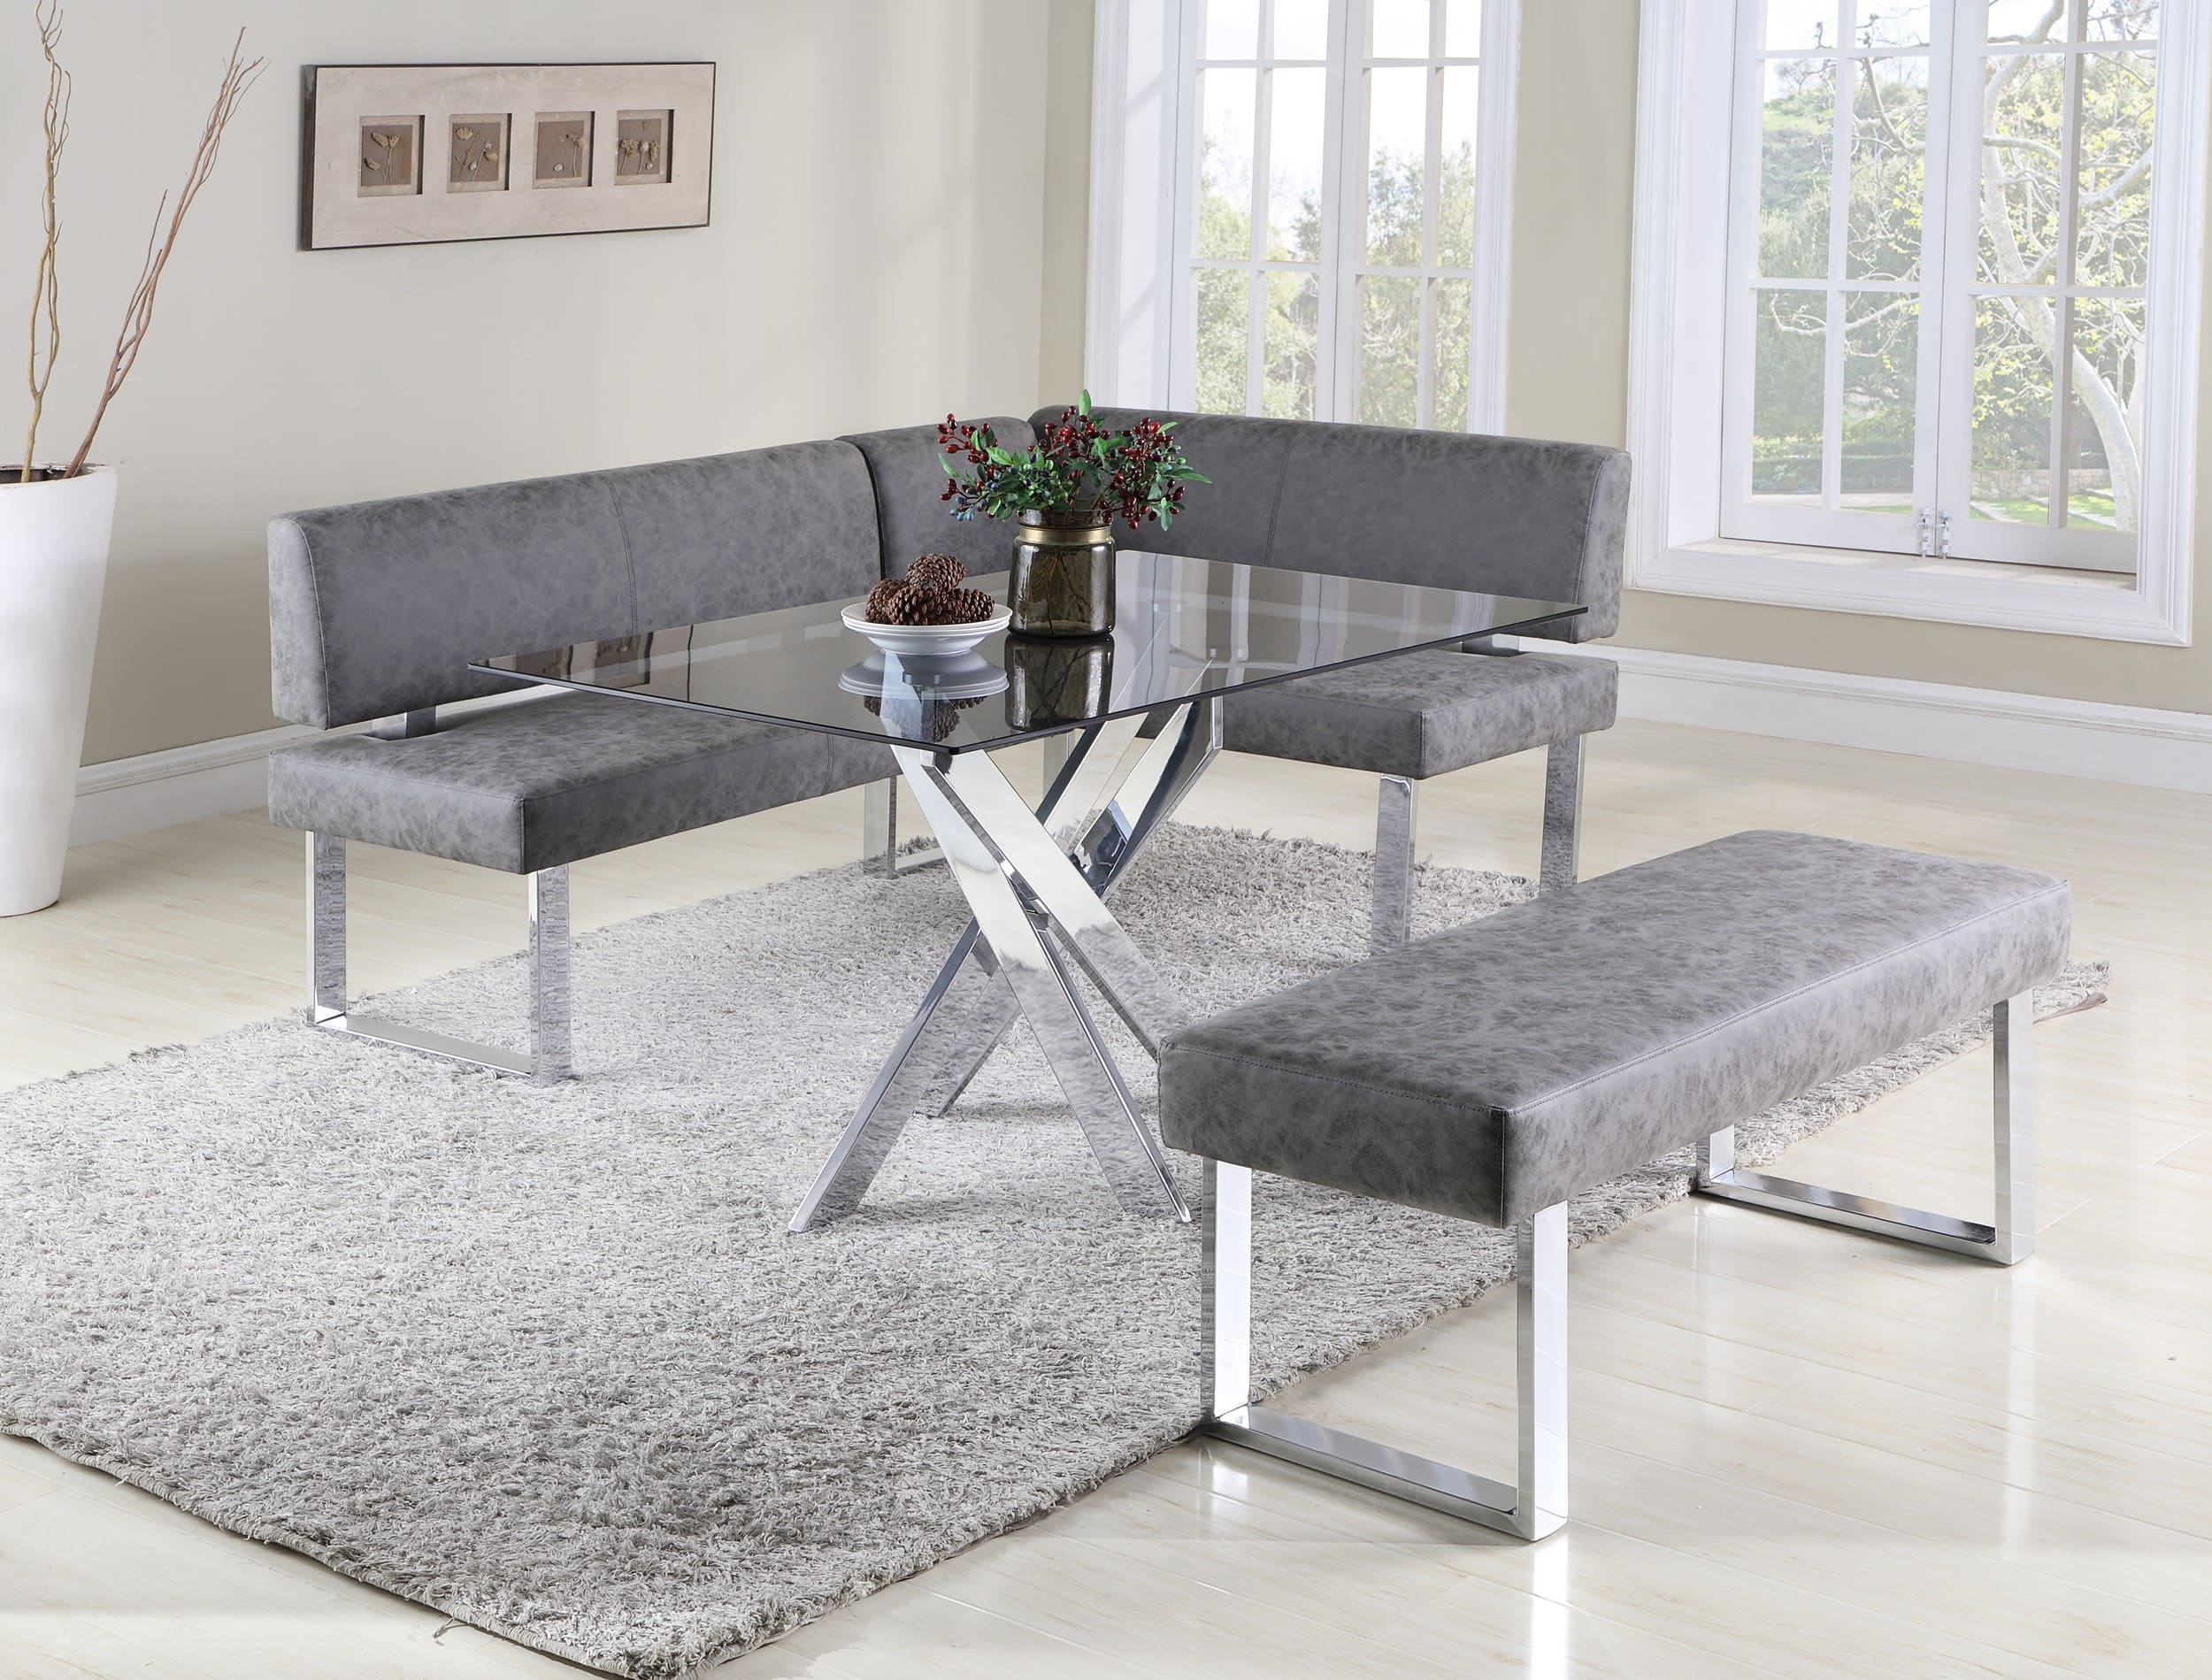 Most Recent Chintaly Imports Genevieve Clear Glass Criss Cross 3 Piece Breakfast With Regard To 3 Piece Breakfast Nook Dinning Set (View 18 of 20)